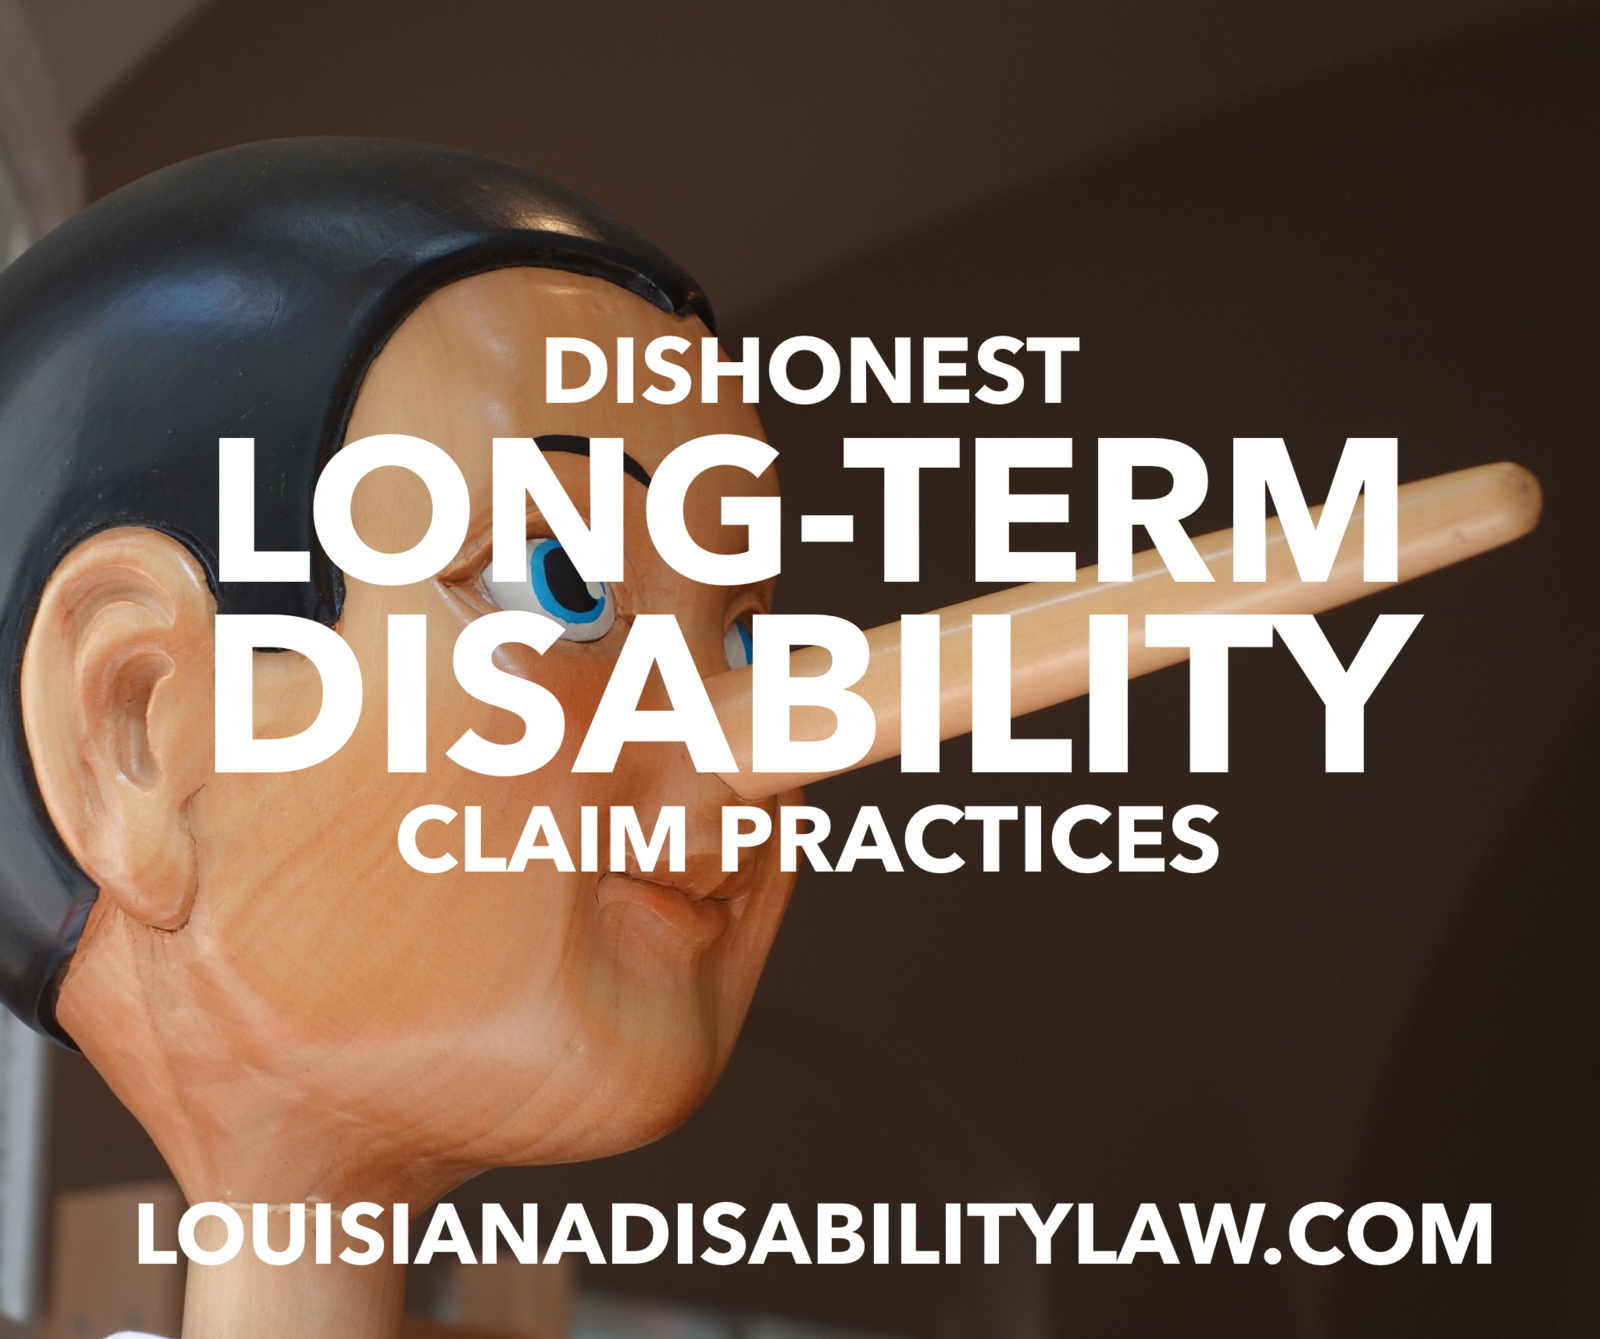 Dishonest Long-Term Disability Claim Practices